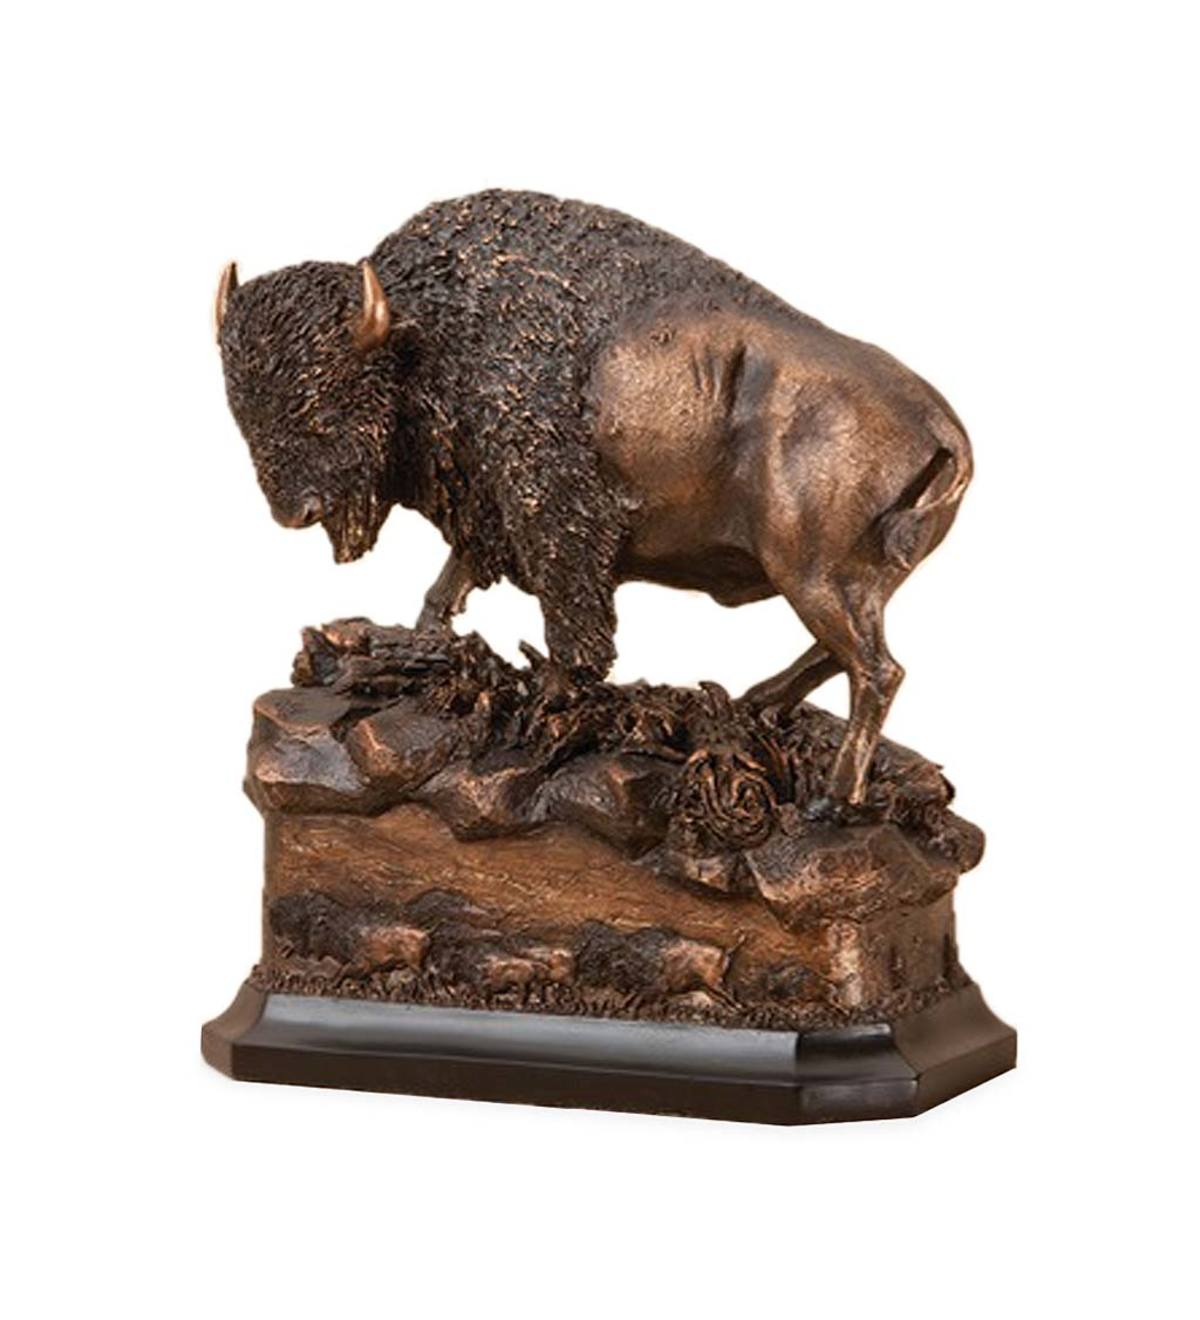 Bronze-Finish Buffalo Sculpture